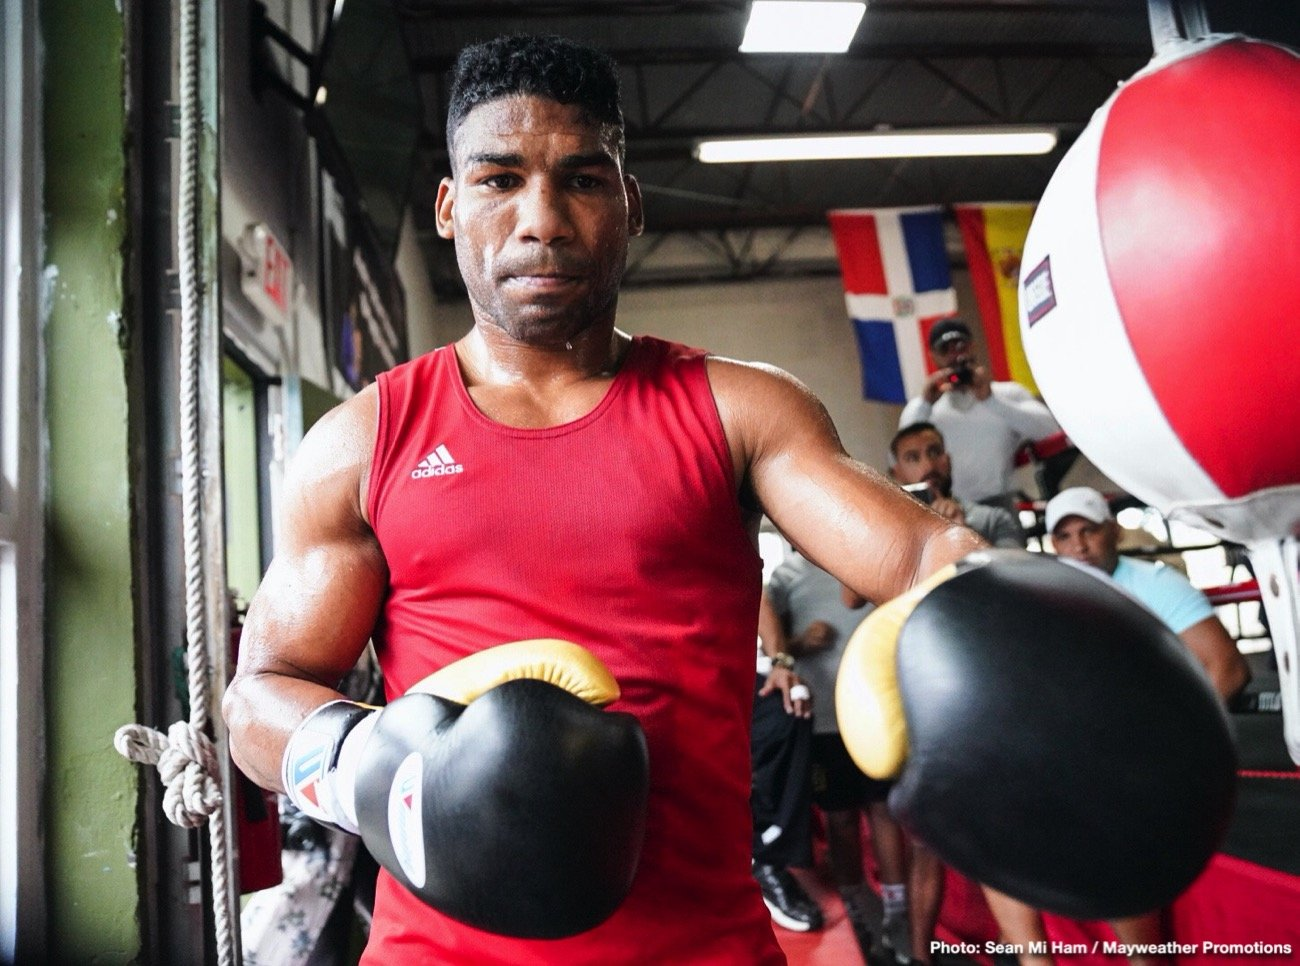 Yuriorkis Gamboa - Yuriorkis Gamboa: I'm very happy to be on this conference call. I'm also very appreciative of the opportunity given to me. A little odd that I'm saying that, given that I'm the veteran coming into this fight, but I think everything's lined up for me to have a big night on the 28th.